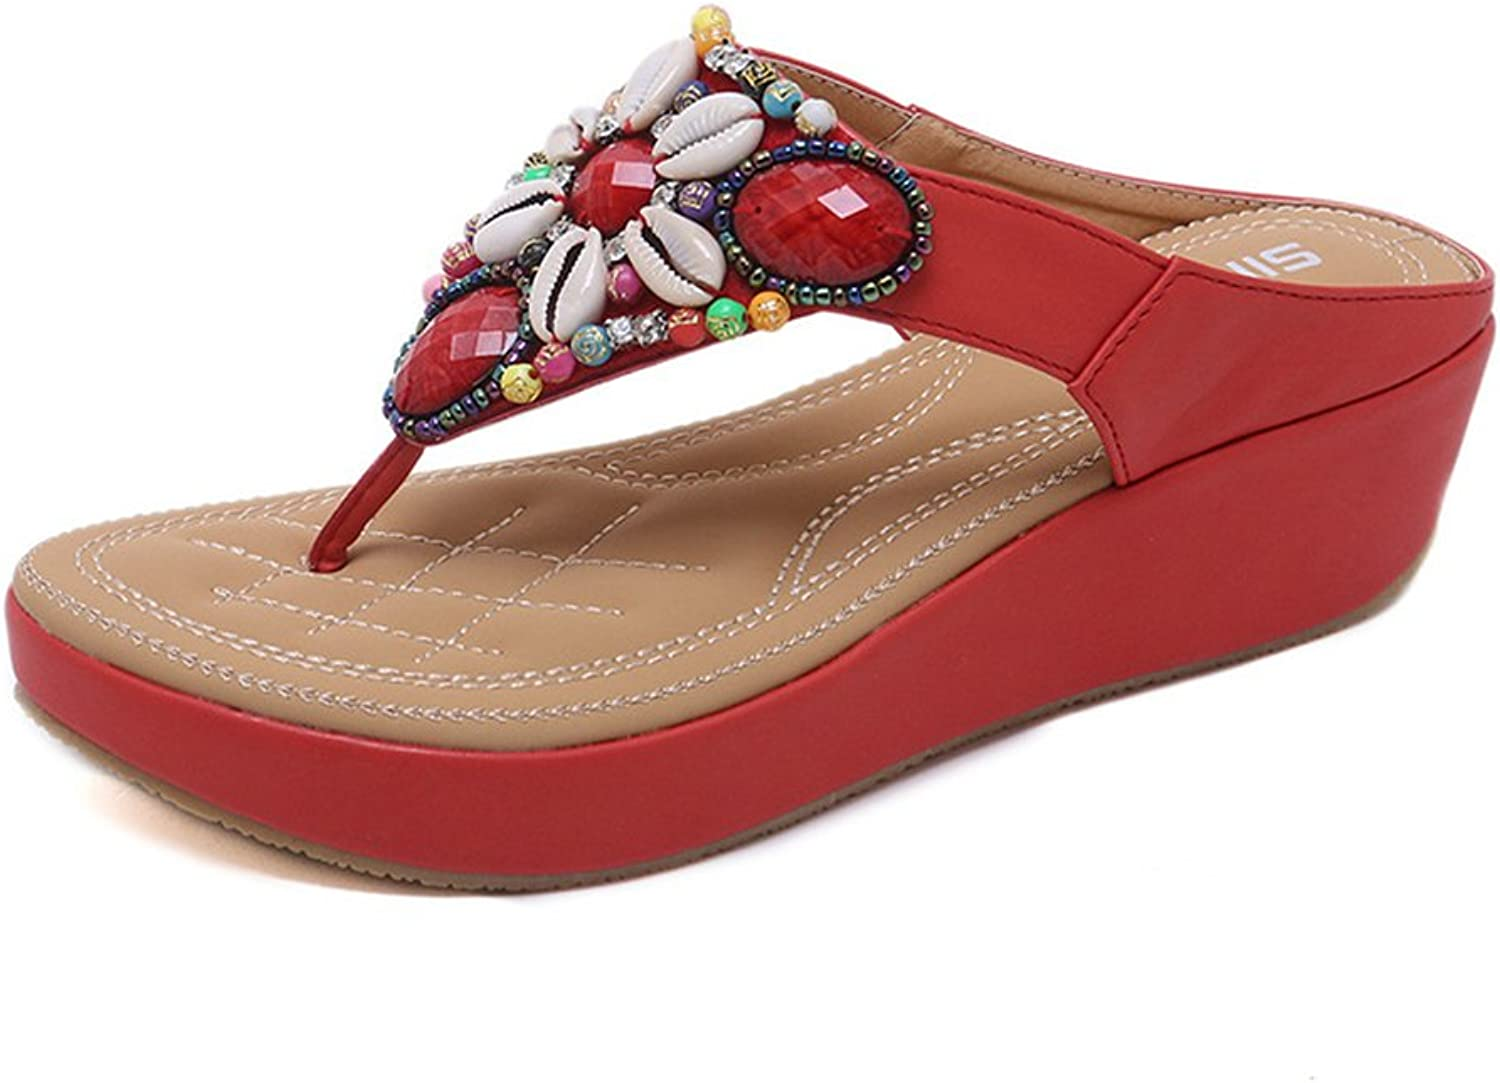 Navoku Jeweled Leather Fashion Womens Sandals Flip Flop Thong Sandle